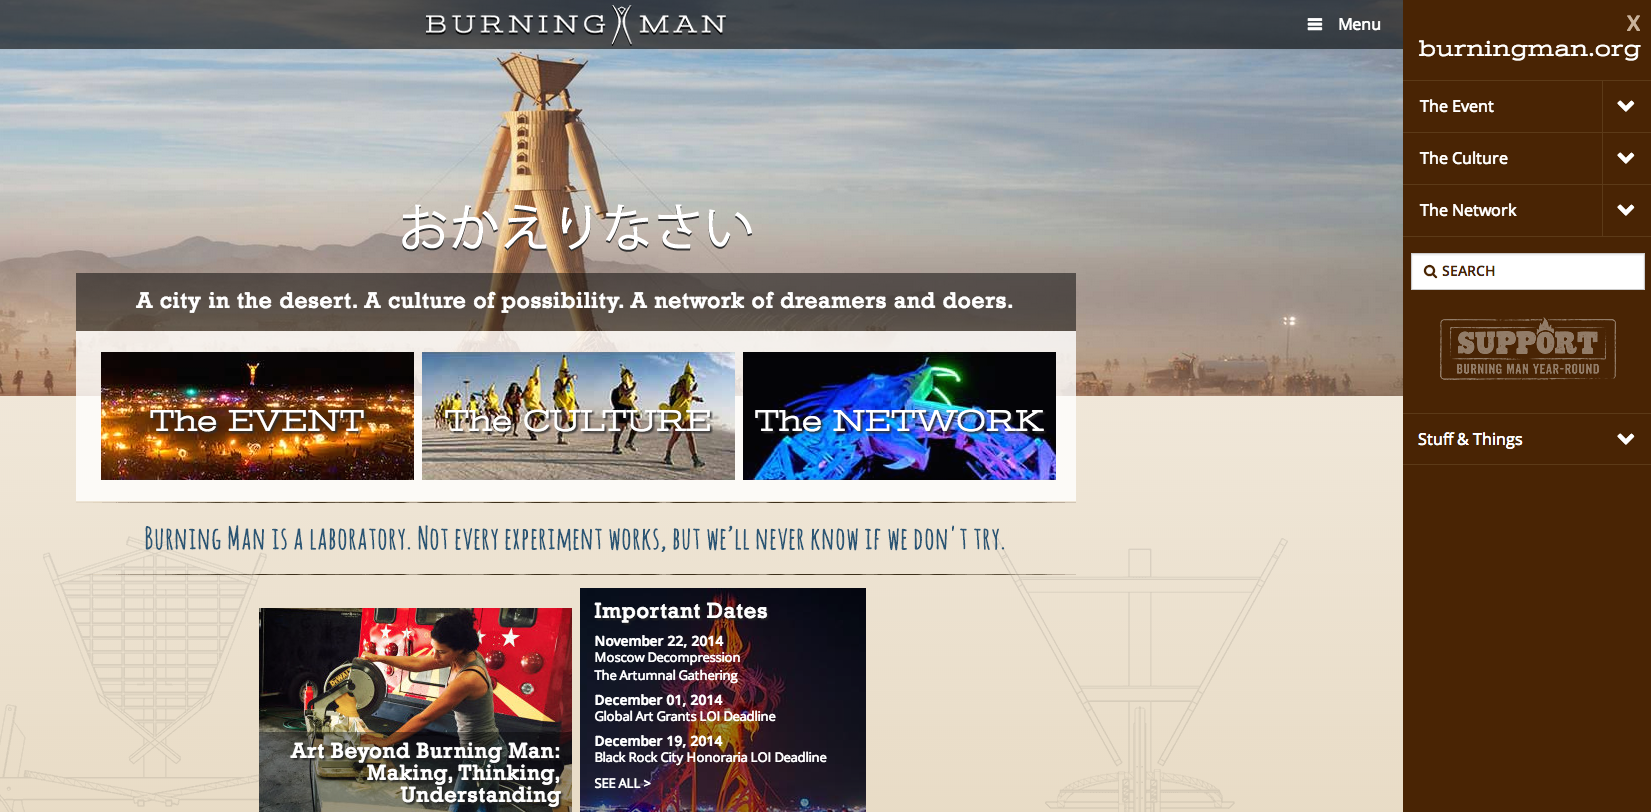 Burningman.org front page